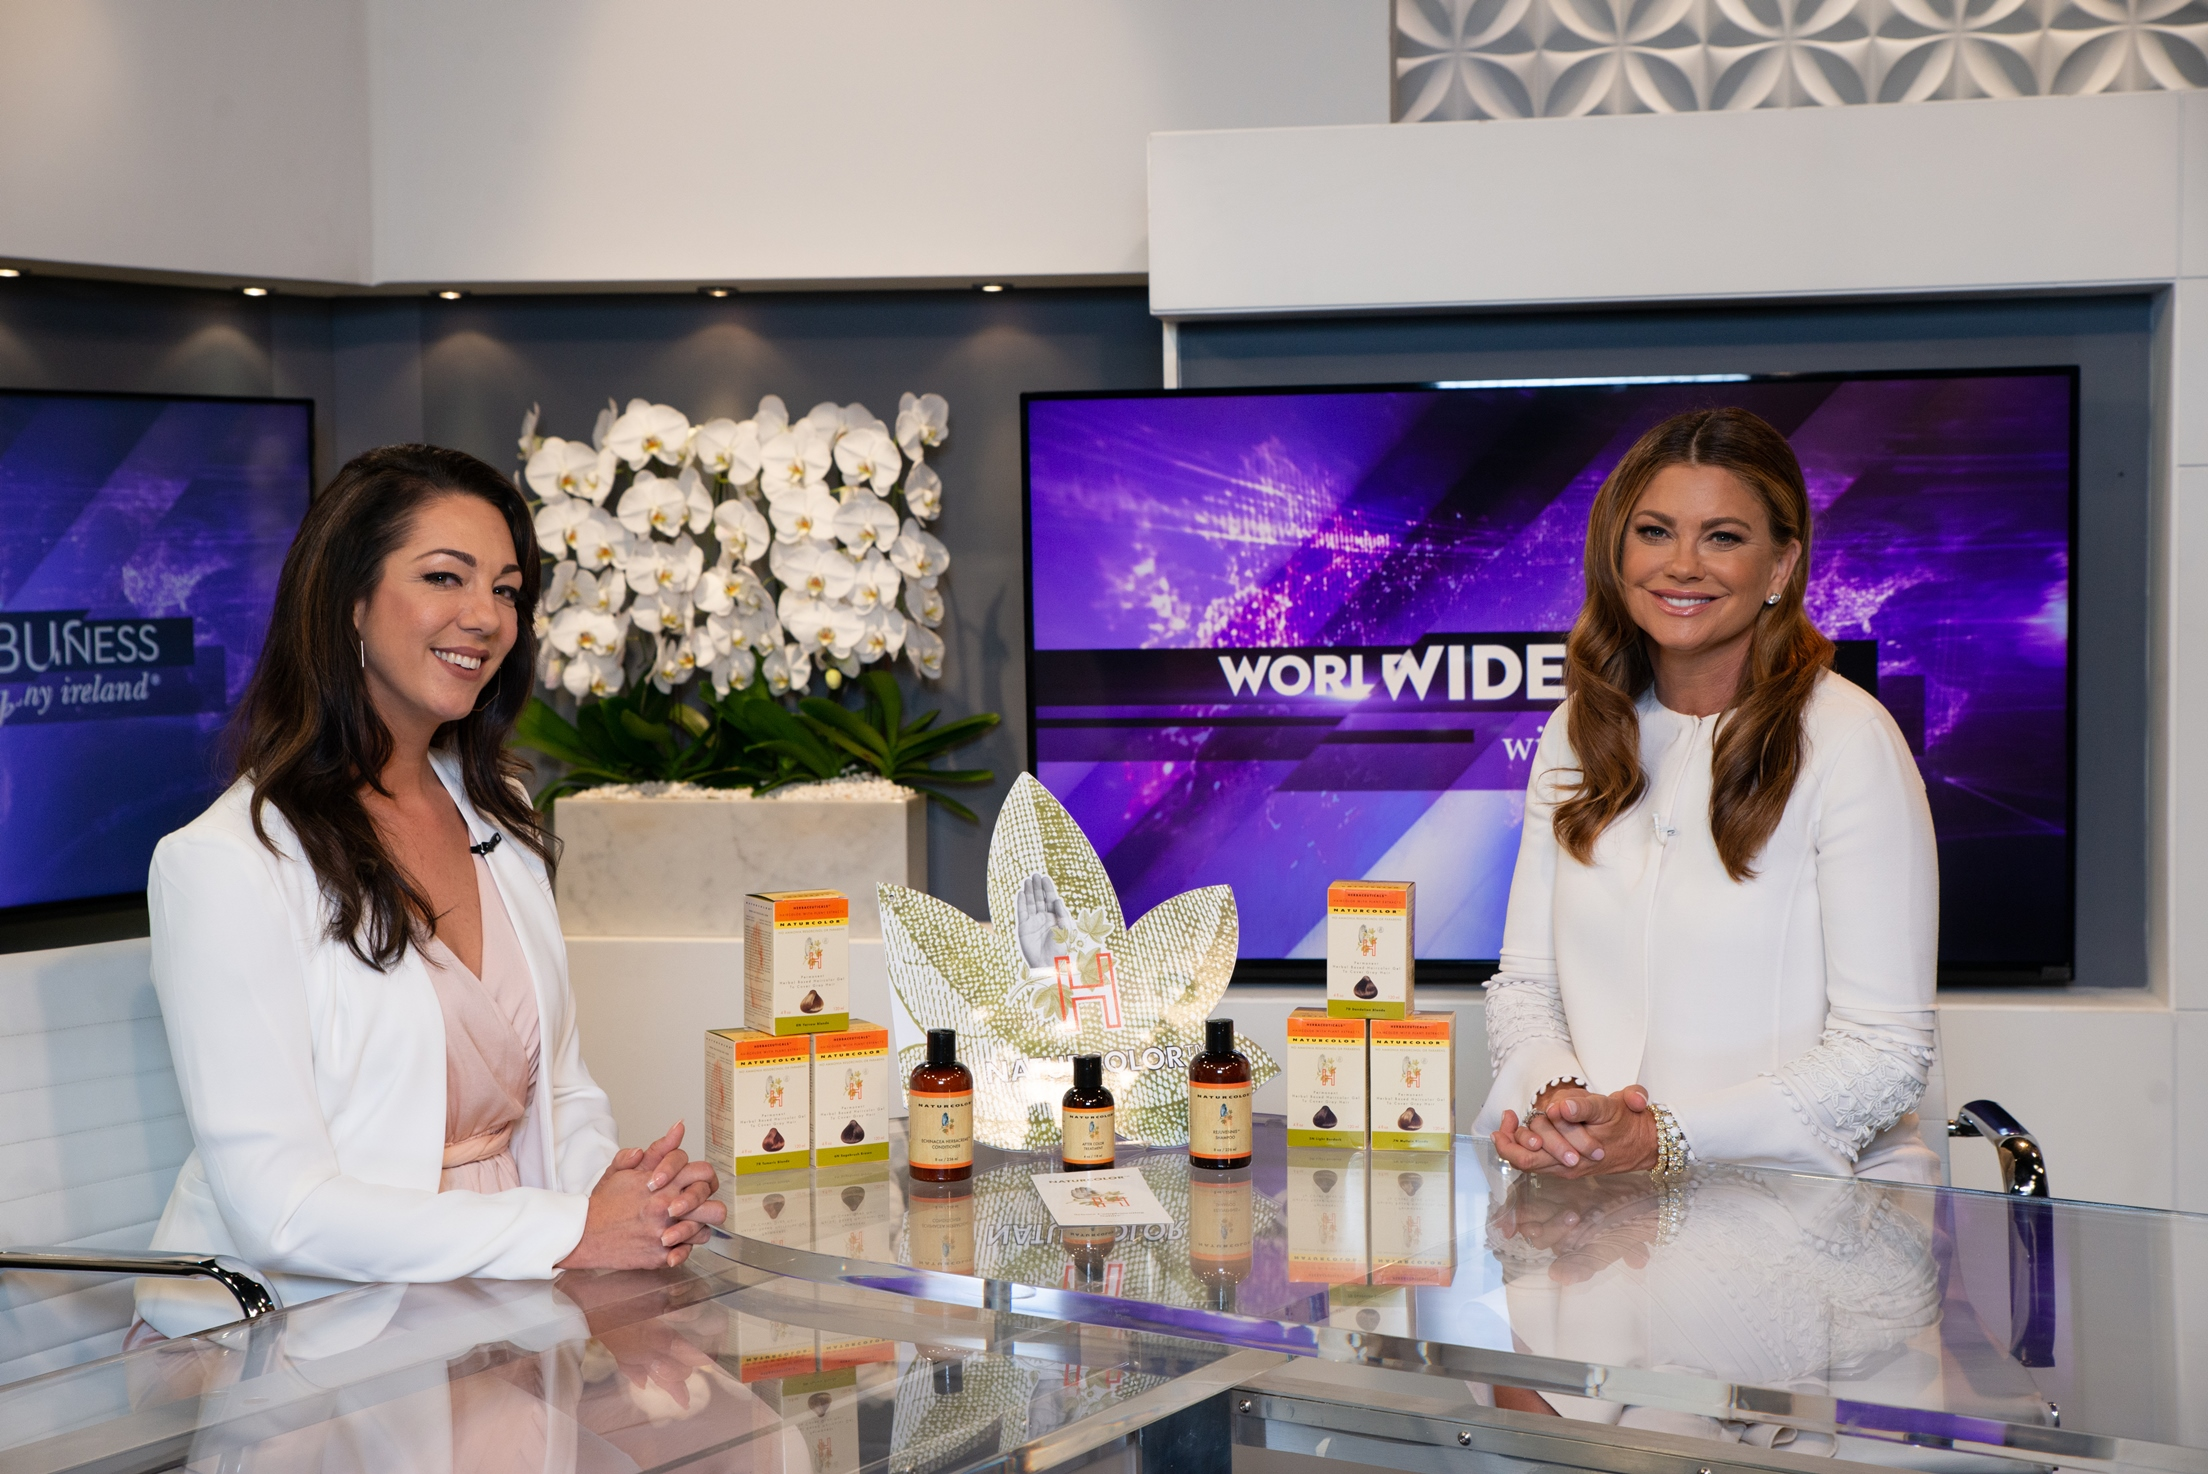 Worldwide Business with kathy ireland®: See NaturColor Introduce Their Innovative, Ecological, Herbal-Based Hair Colors 2